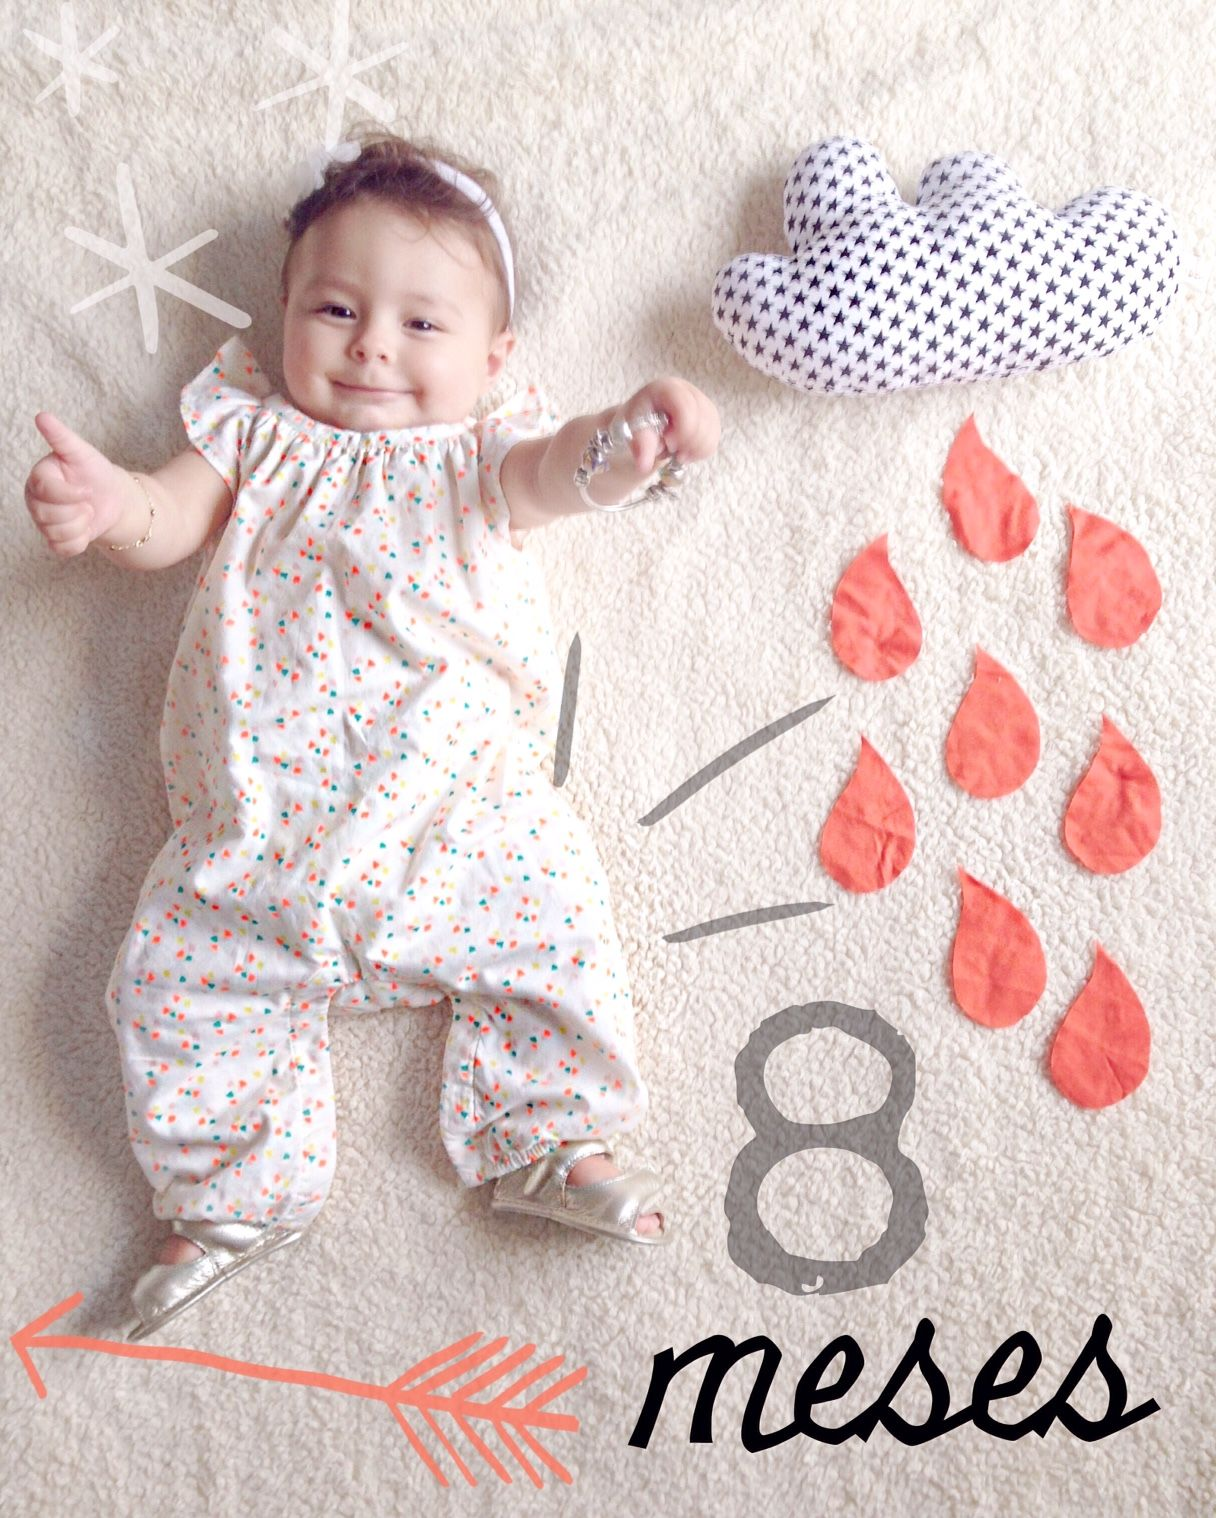 8 Meses De Amelie Photo Trends Pinterest Baby Girl Photography